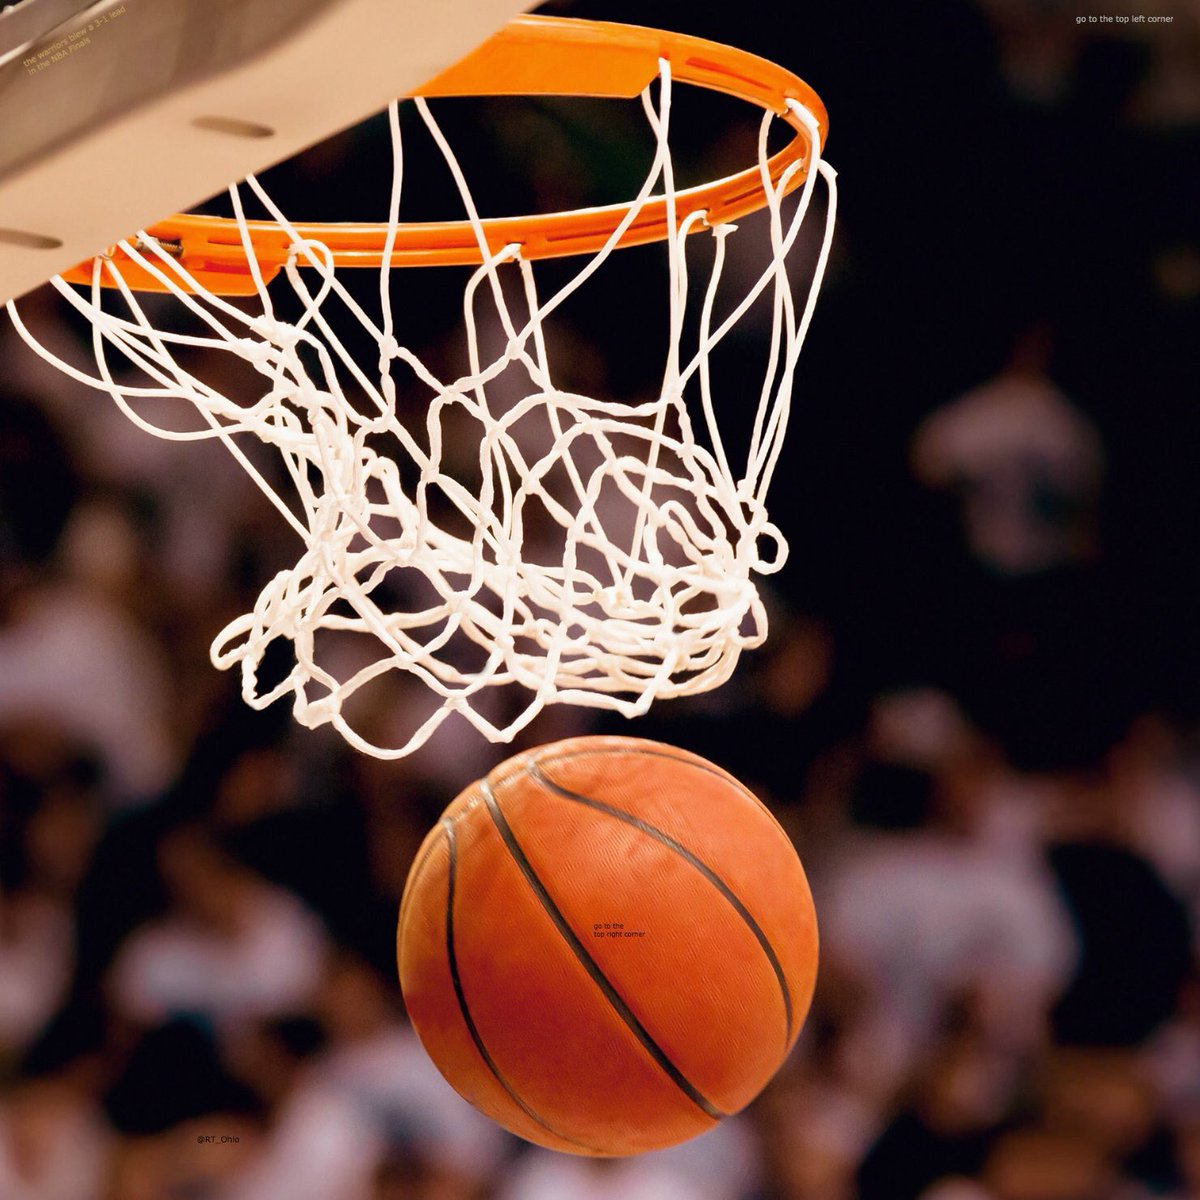 ZOOM IN ON THE BASKETBALL...